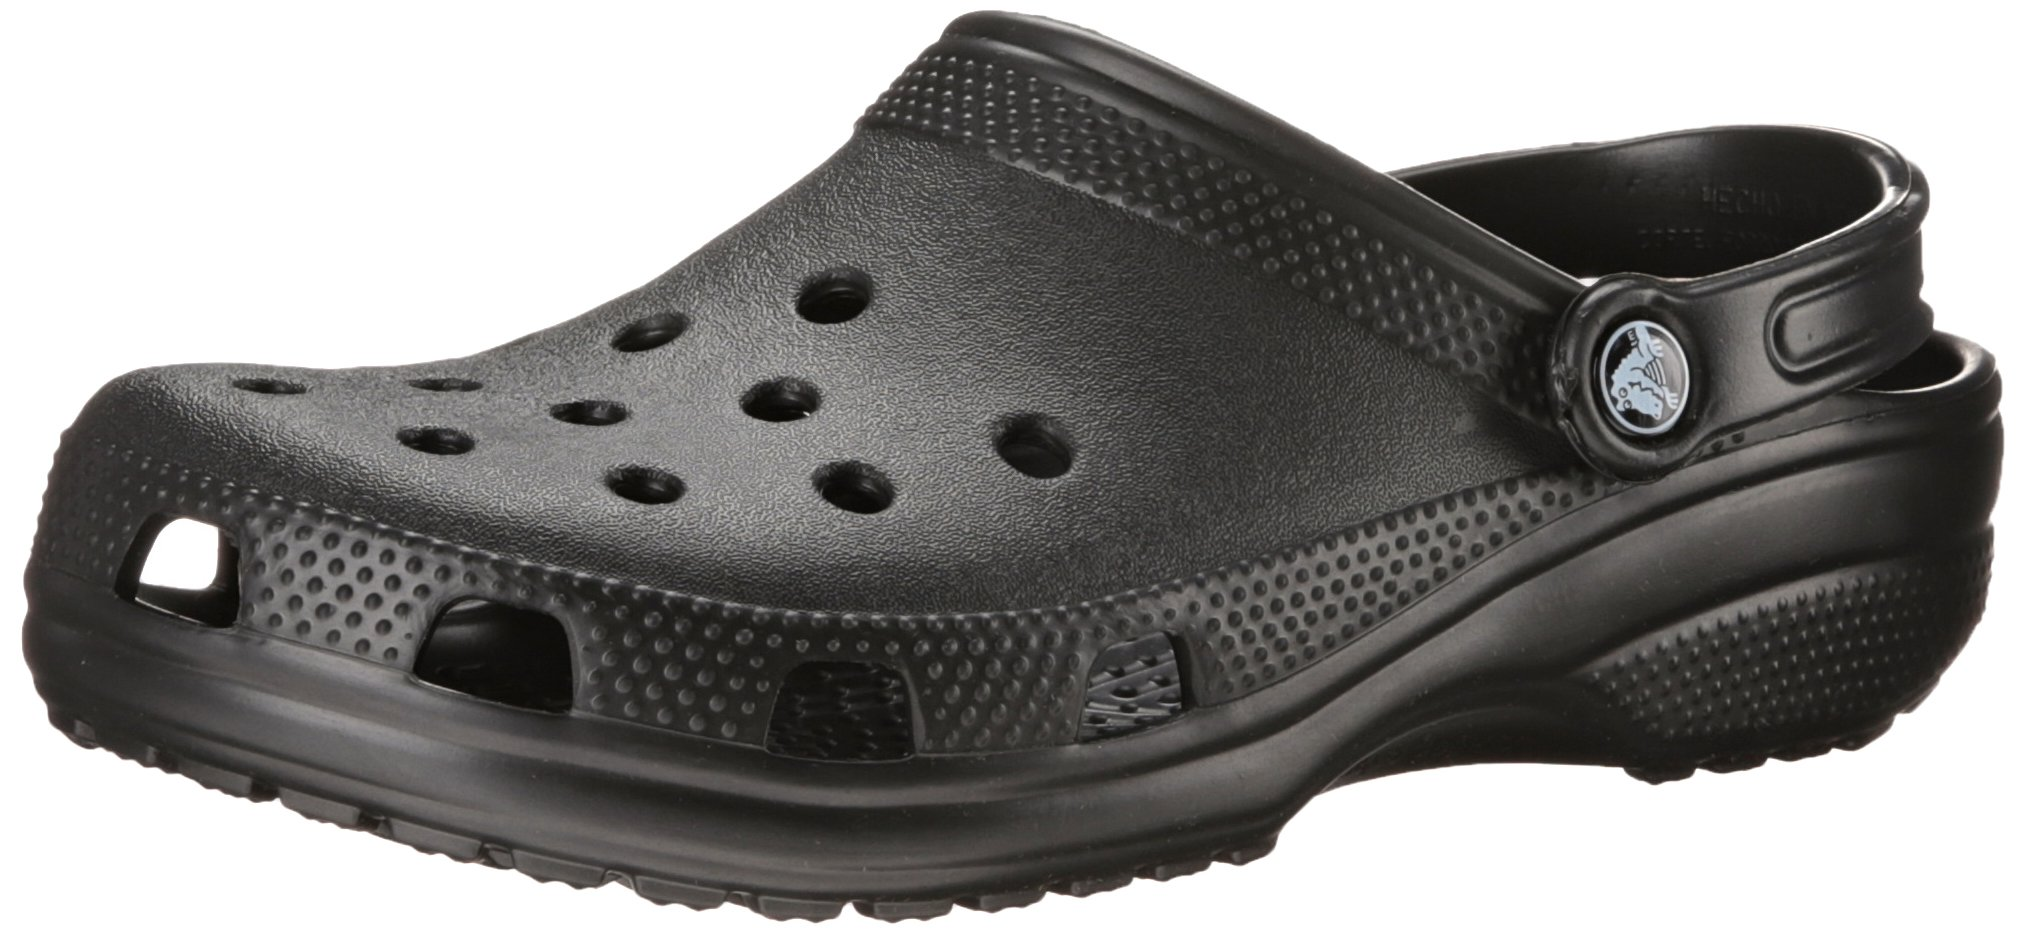 Crocs Unisex Classic Clog, Black, 11 US Men / 13 US Women by Crocs